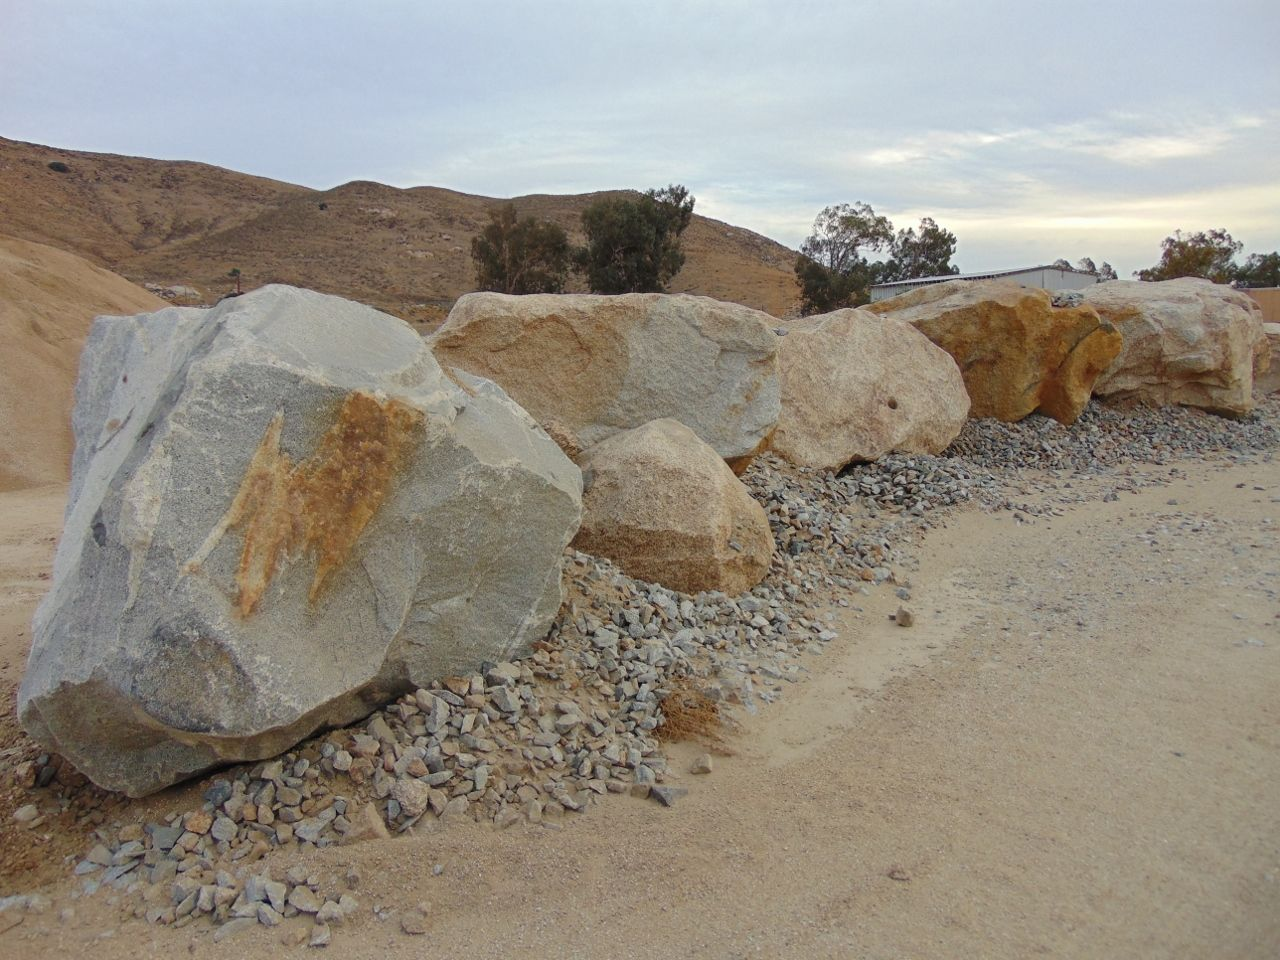 Gold Granite Boulders For Sale From Southern California Can Be Shipped Anywhere Needed Some Of These Have Been Haul Bouldering Southern California California